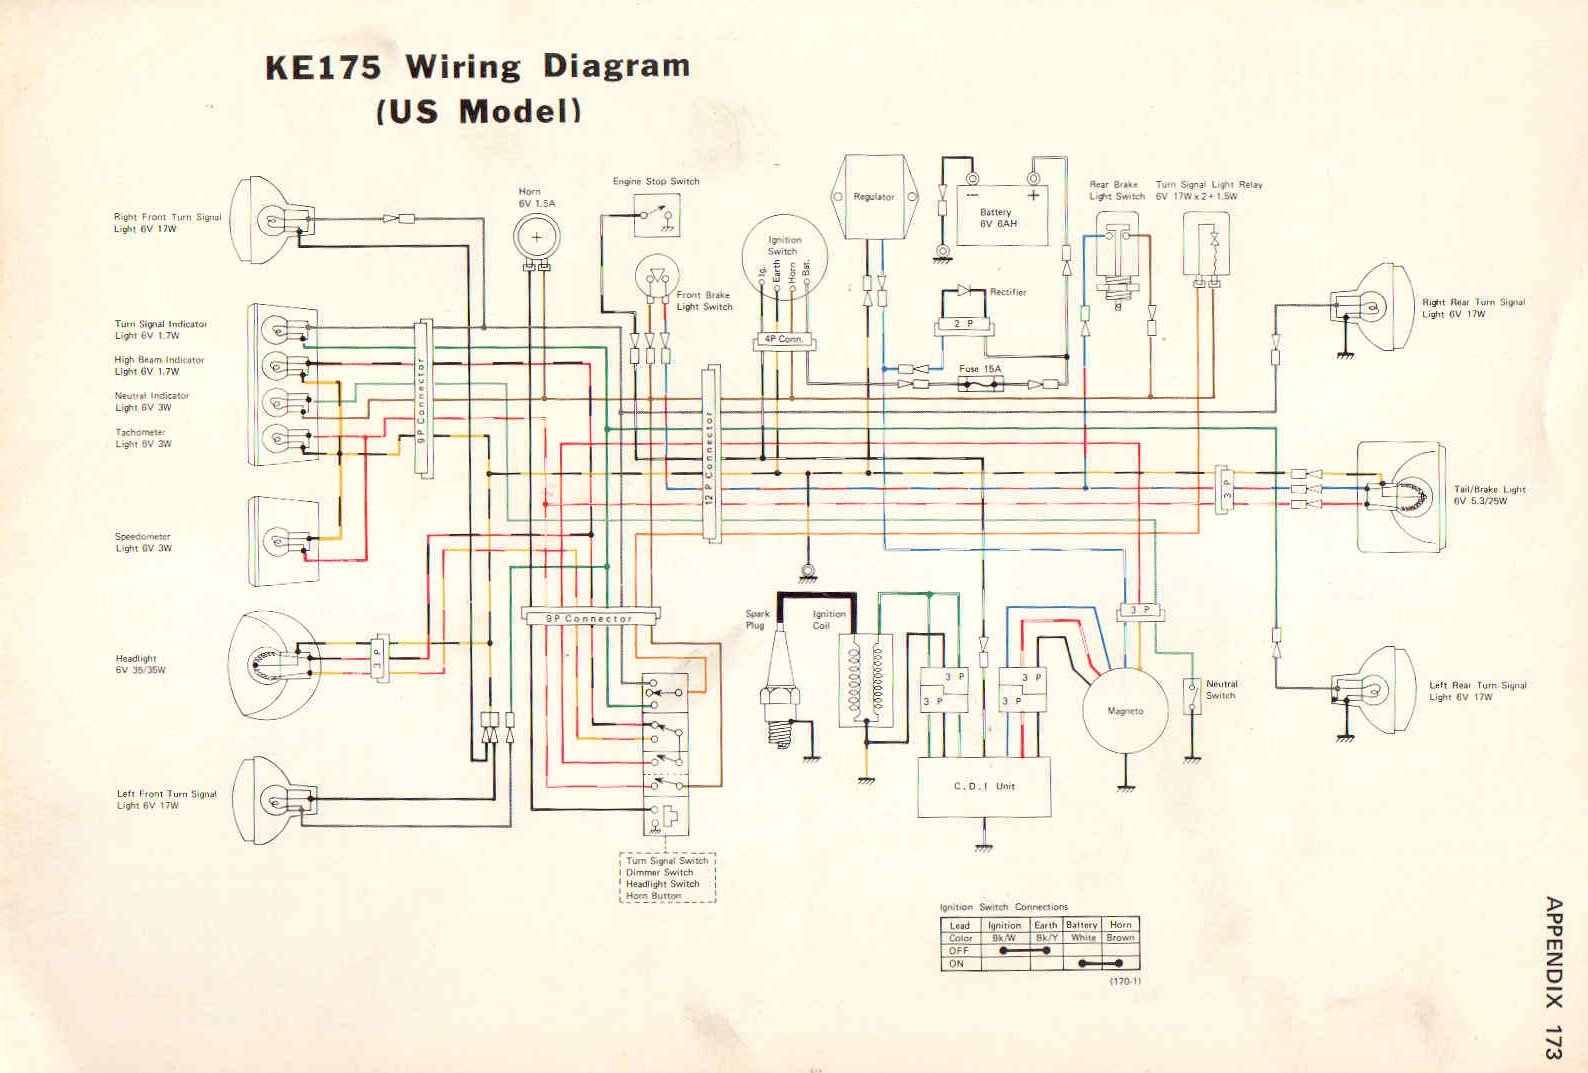 1975 Kawasaki G5 100 Wiring Diagram | New Wiring Resources 2019 on